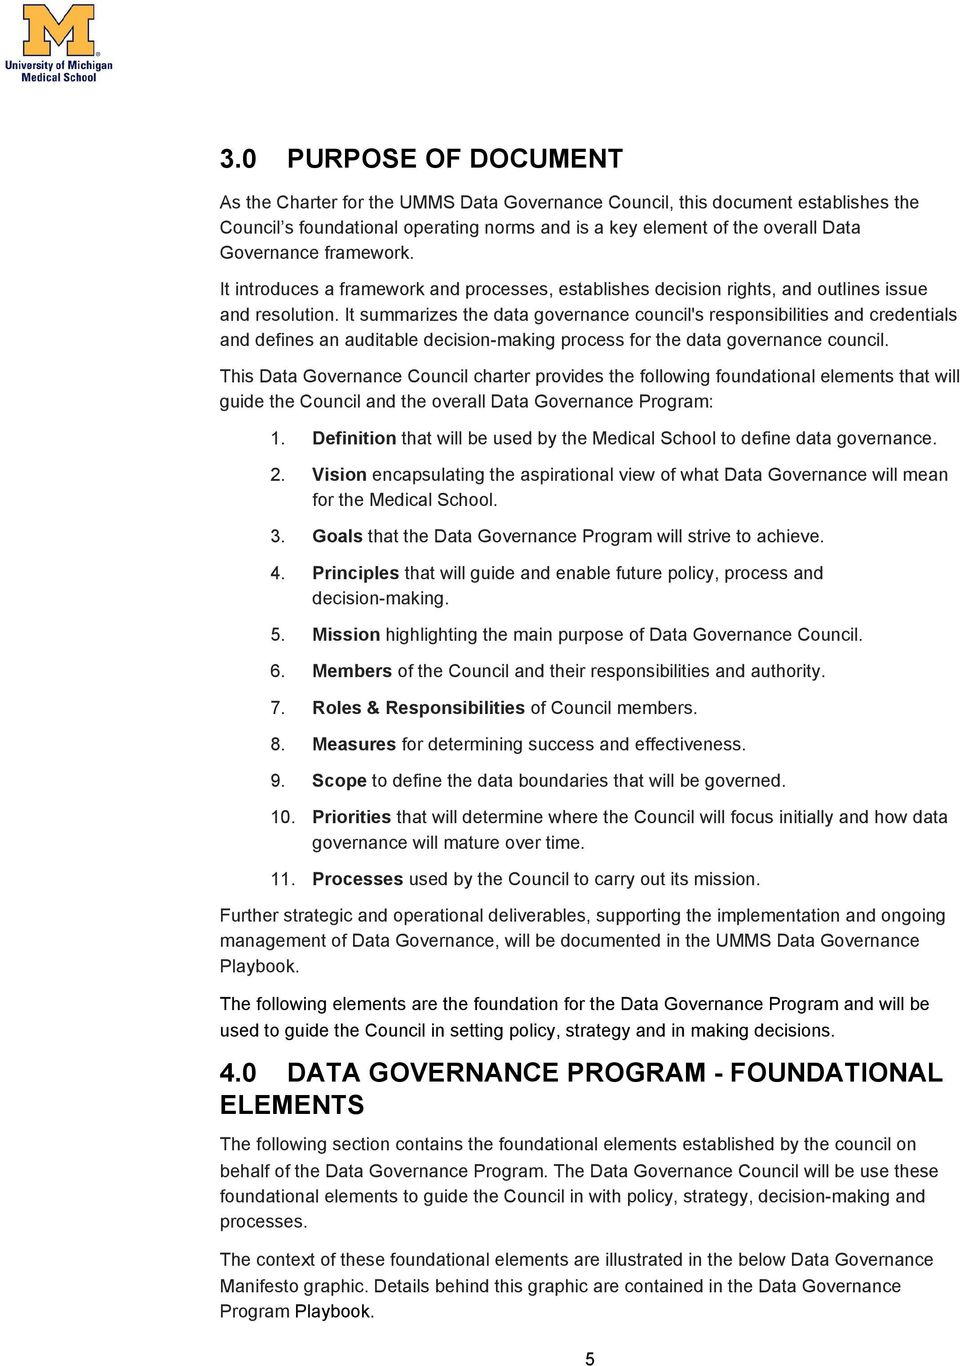 It summarizes the data governance council's responsibilities and credentials and defines an auditable decision making process for the data governance council.